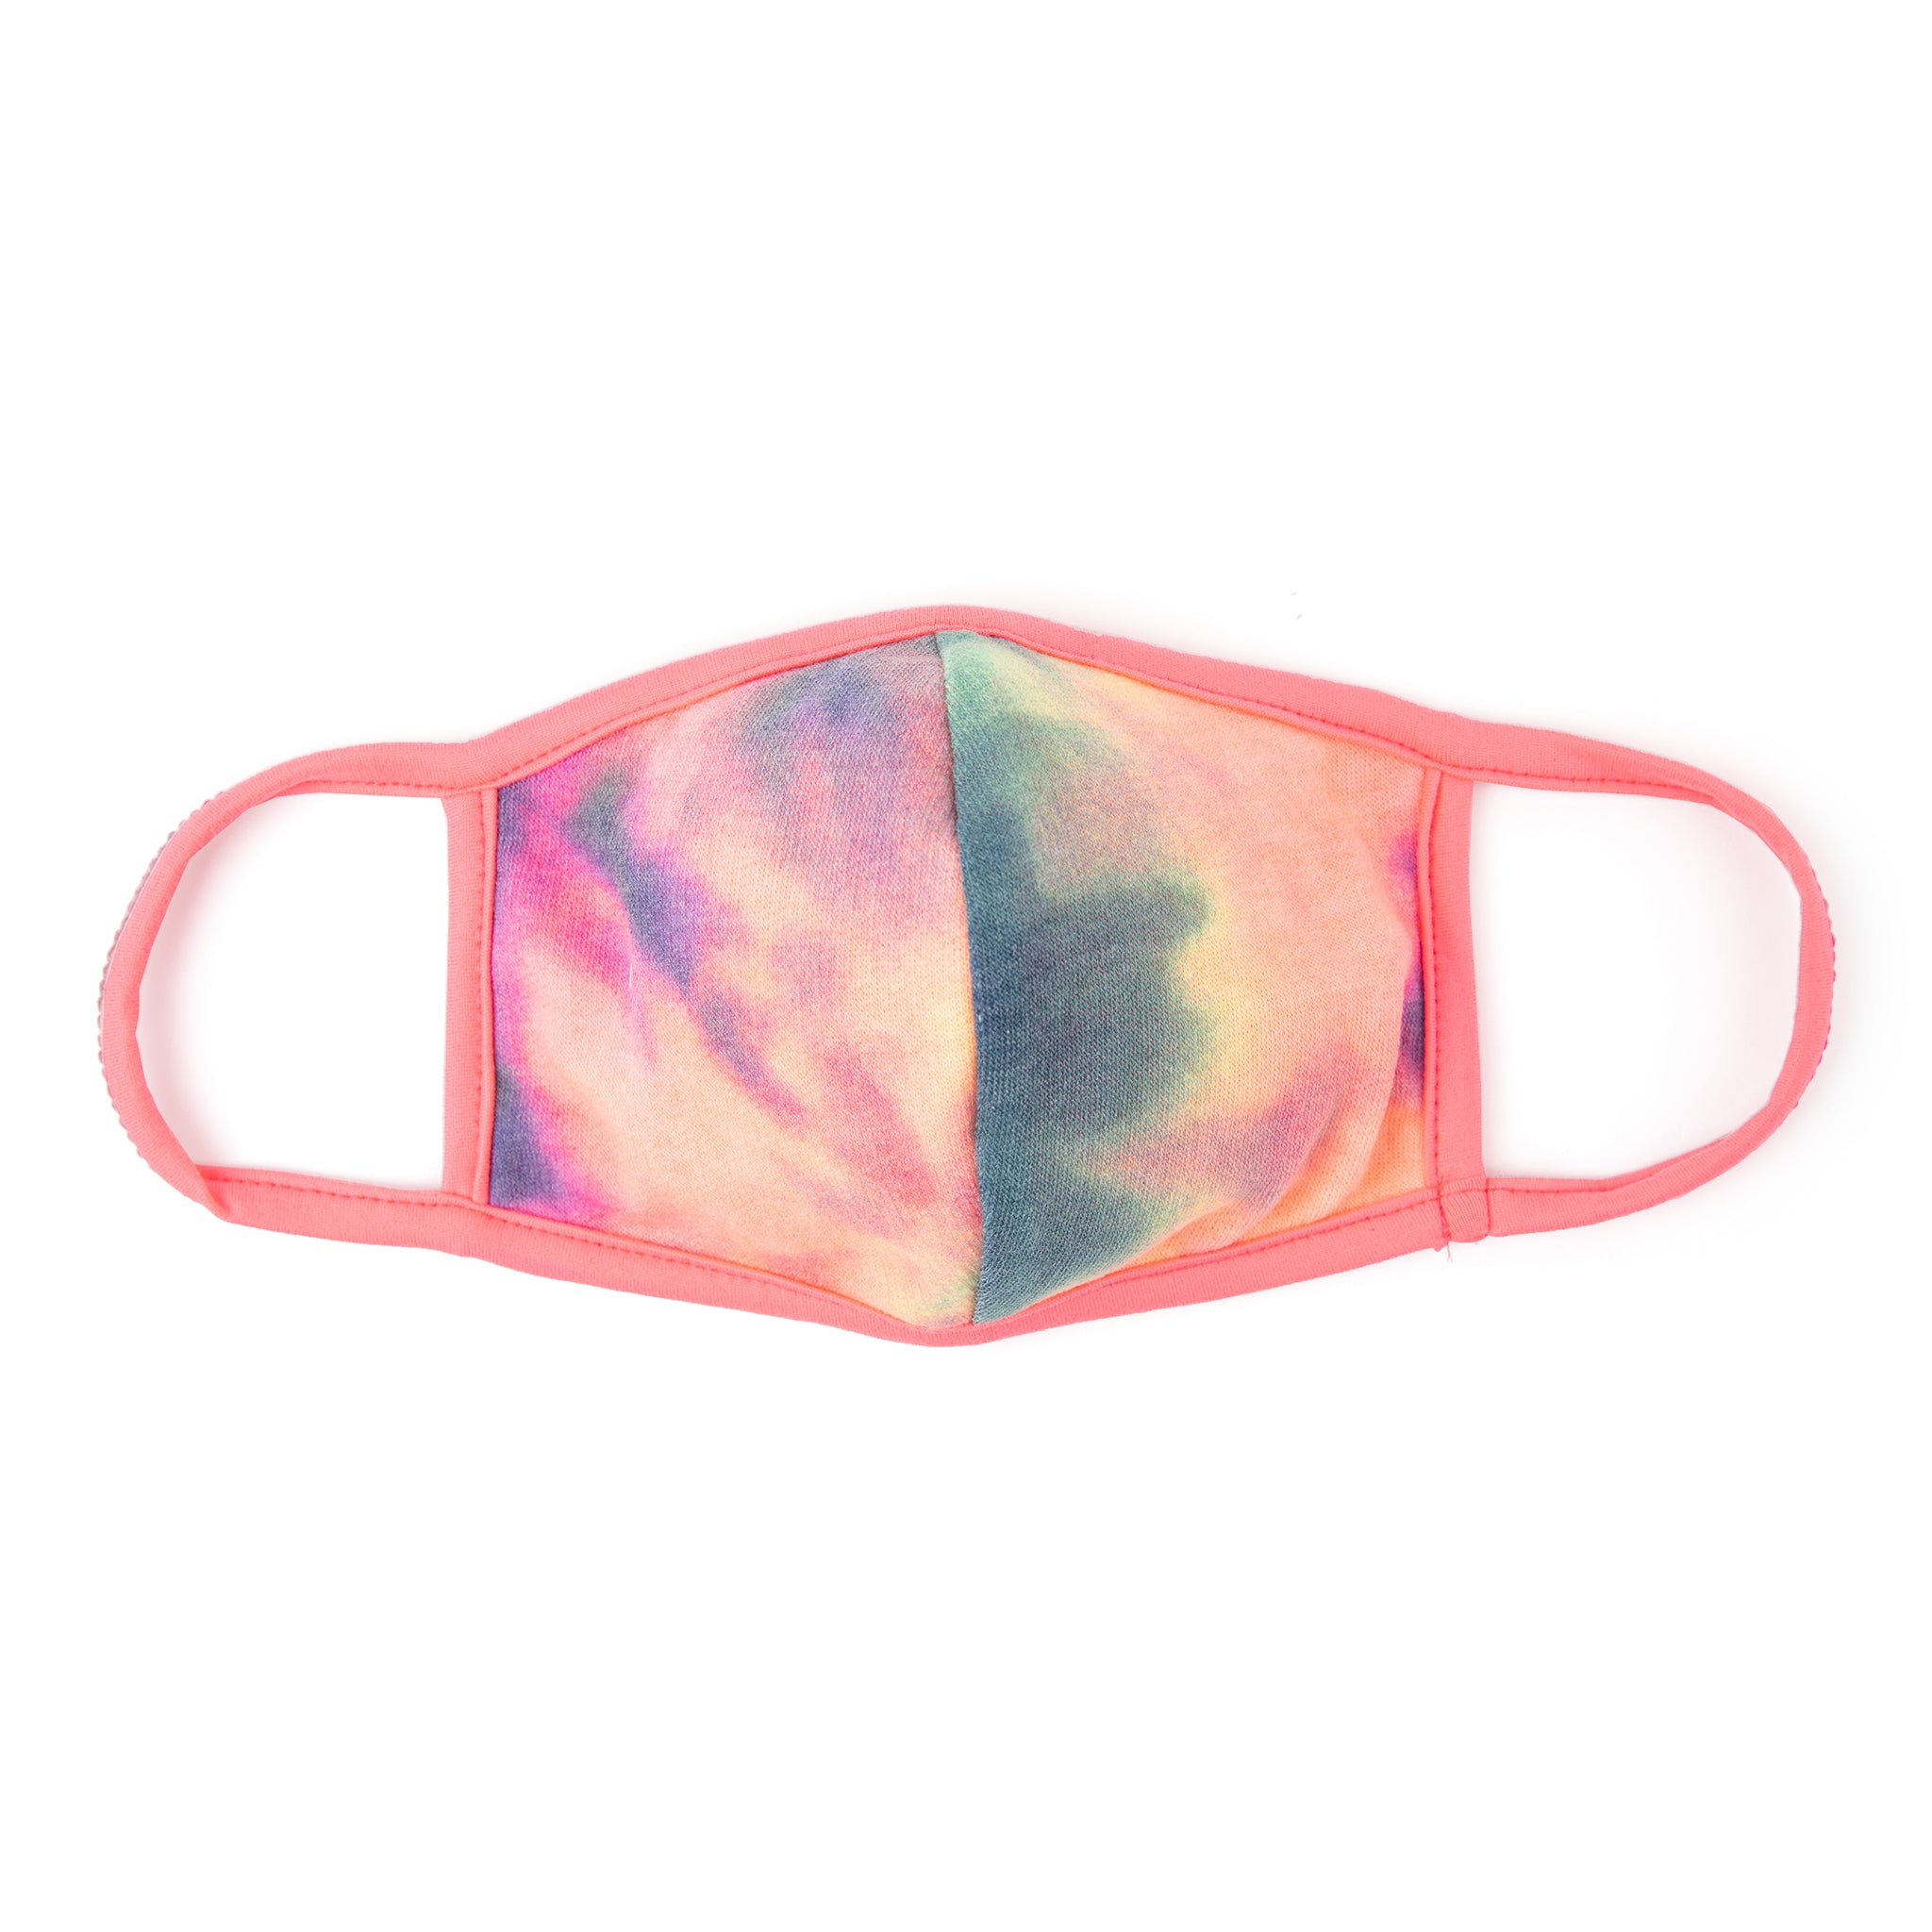 Tie-Dye Face Mask — Navy with Neon Pink Ear Loops